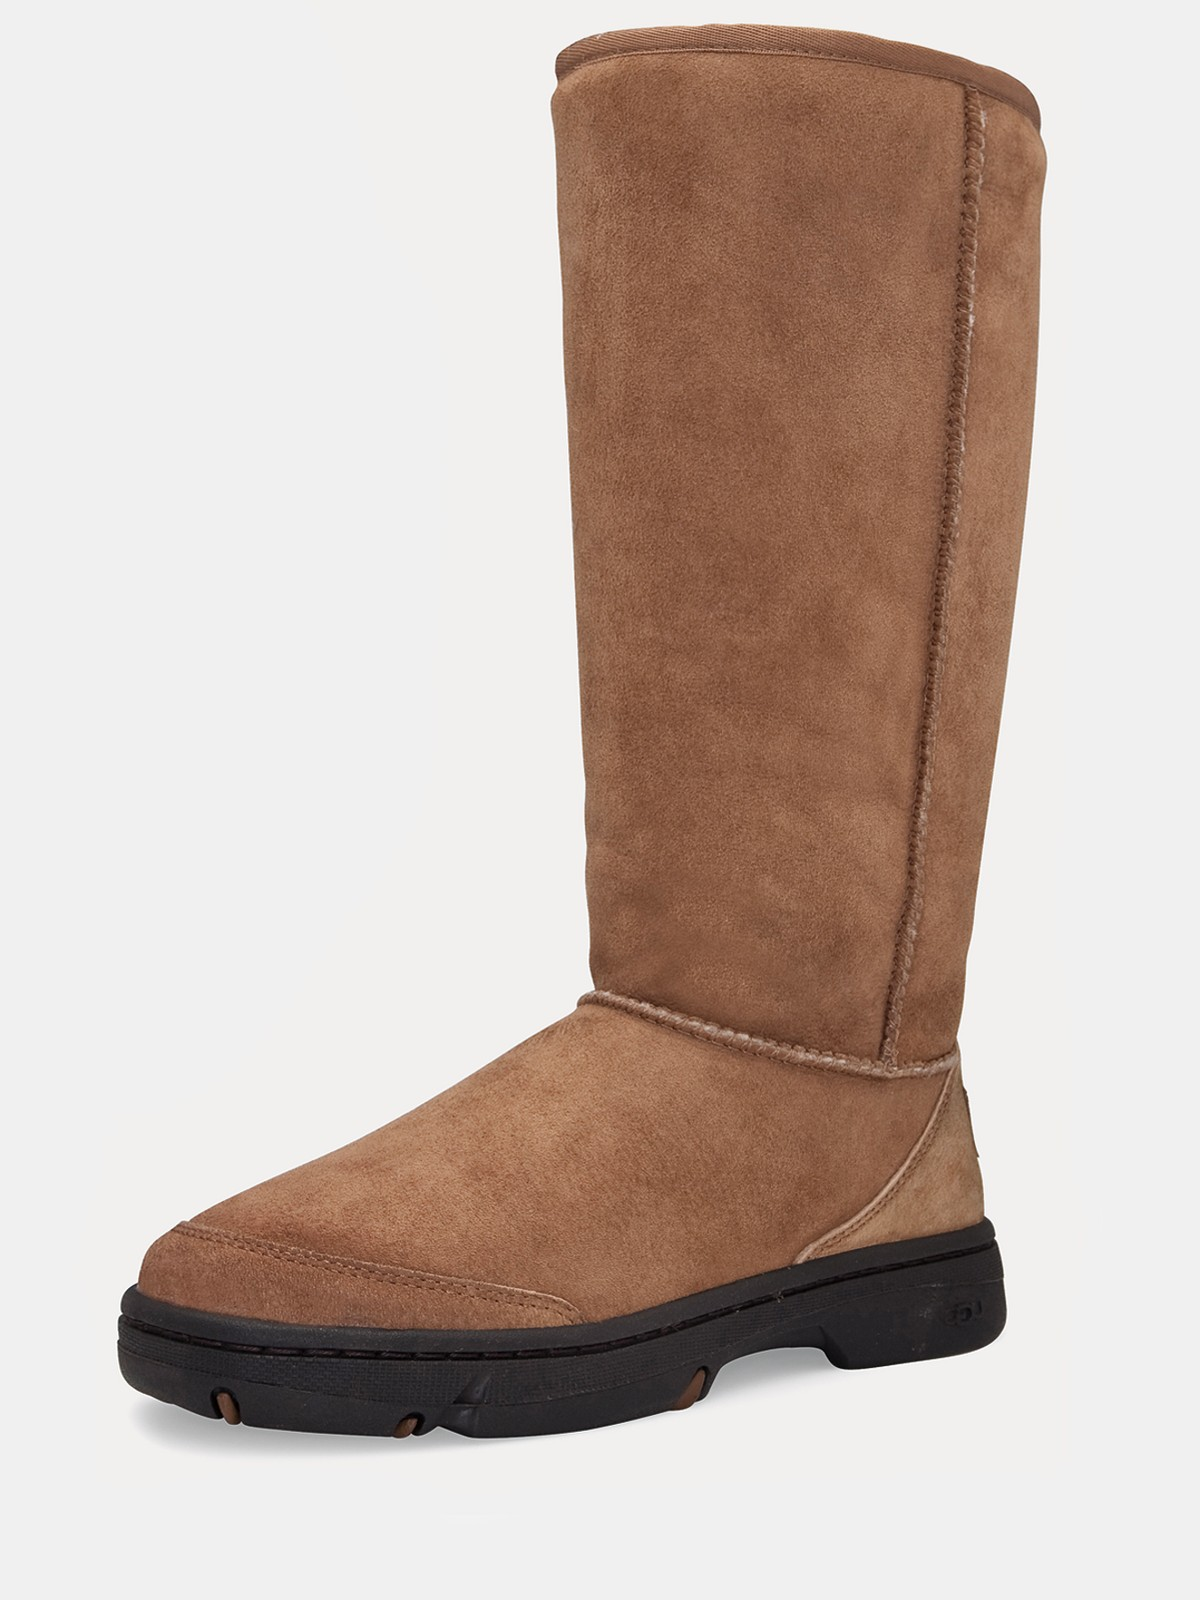 ugg boots brown tall - photo #17